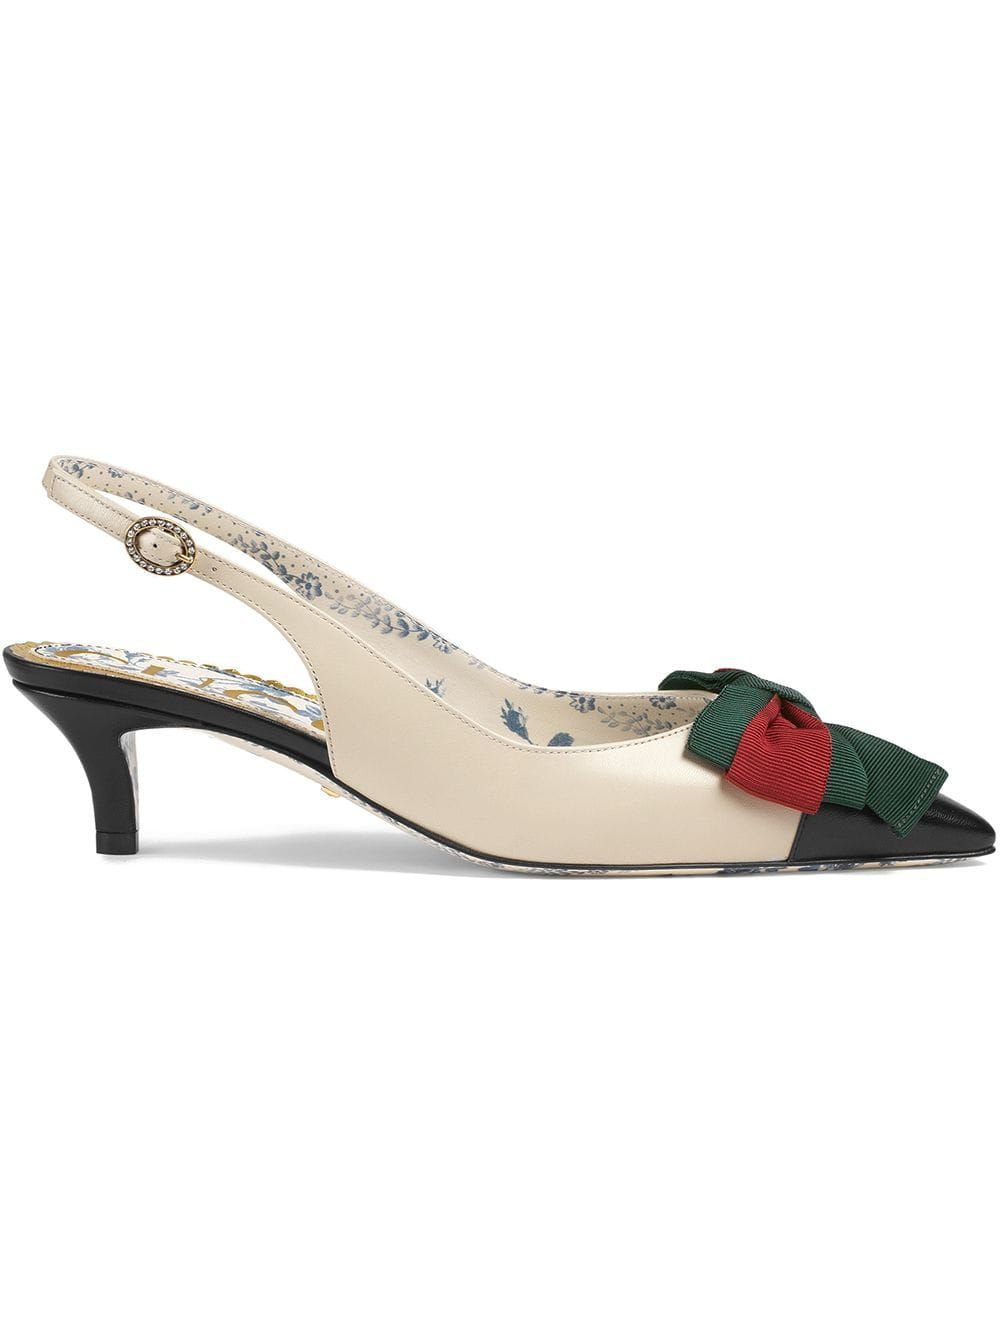 db817abd7 Gucci Leather sling-back pump with Web bow - White in 2019 ...